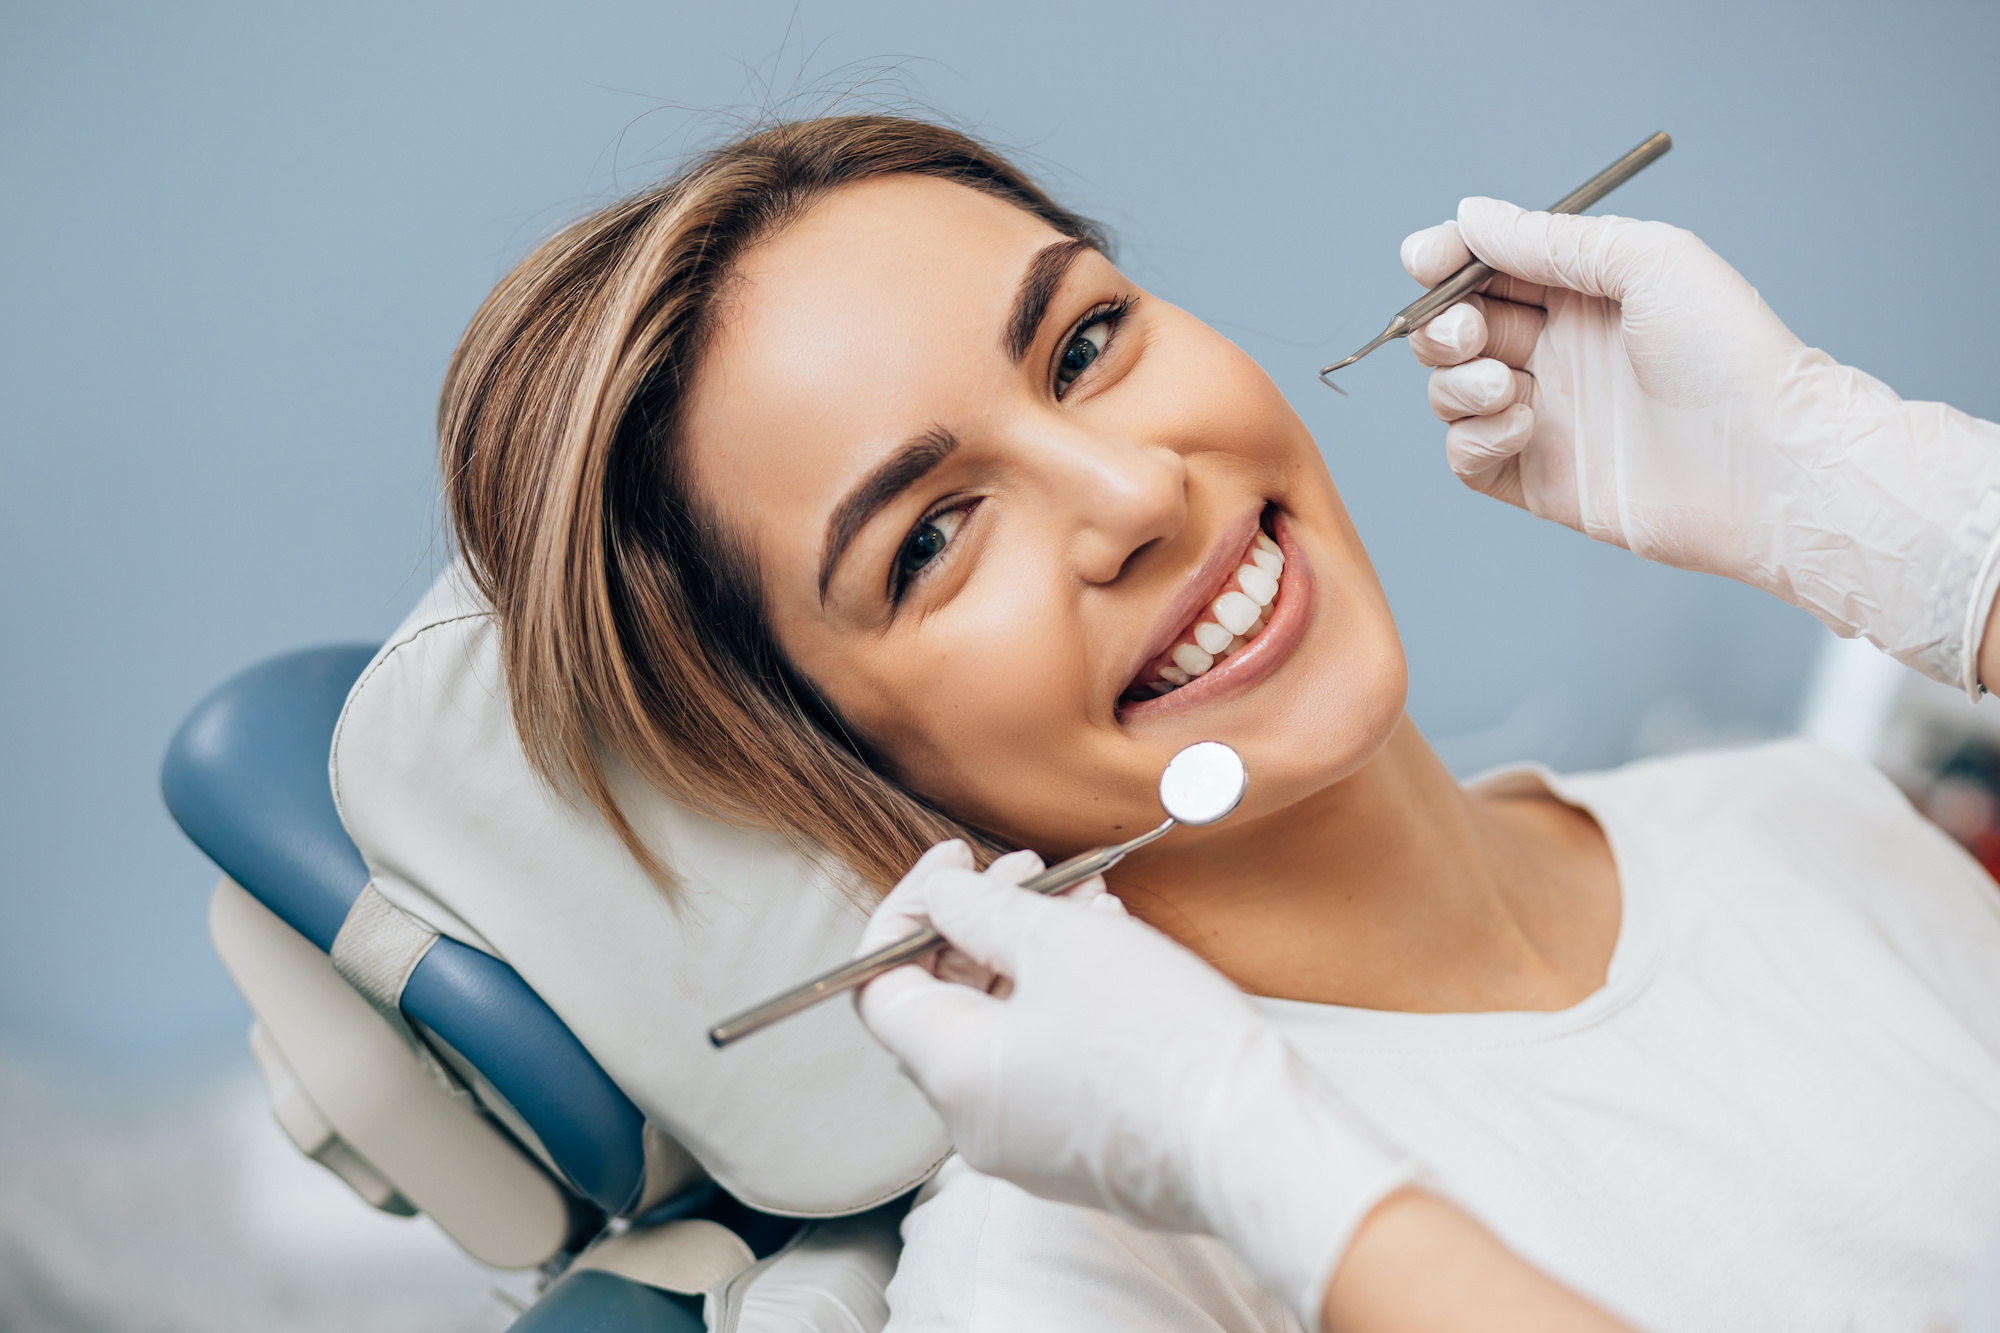 Knowledge is power, and this is as true of preventive dentistry as it is of anything else. So if you're going to be heading to Walton Family Dentistry or another dentist in Bardstown for a routine preventive cleaning, we recommend that you take the opportunity to ask a few questions about your dental health. Here are a few suggestions from our team.